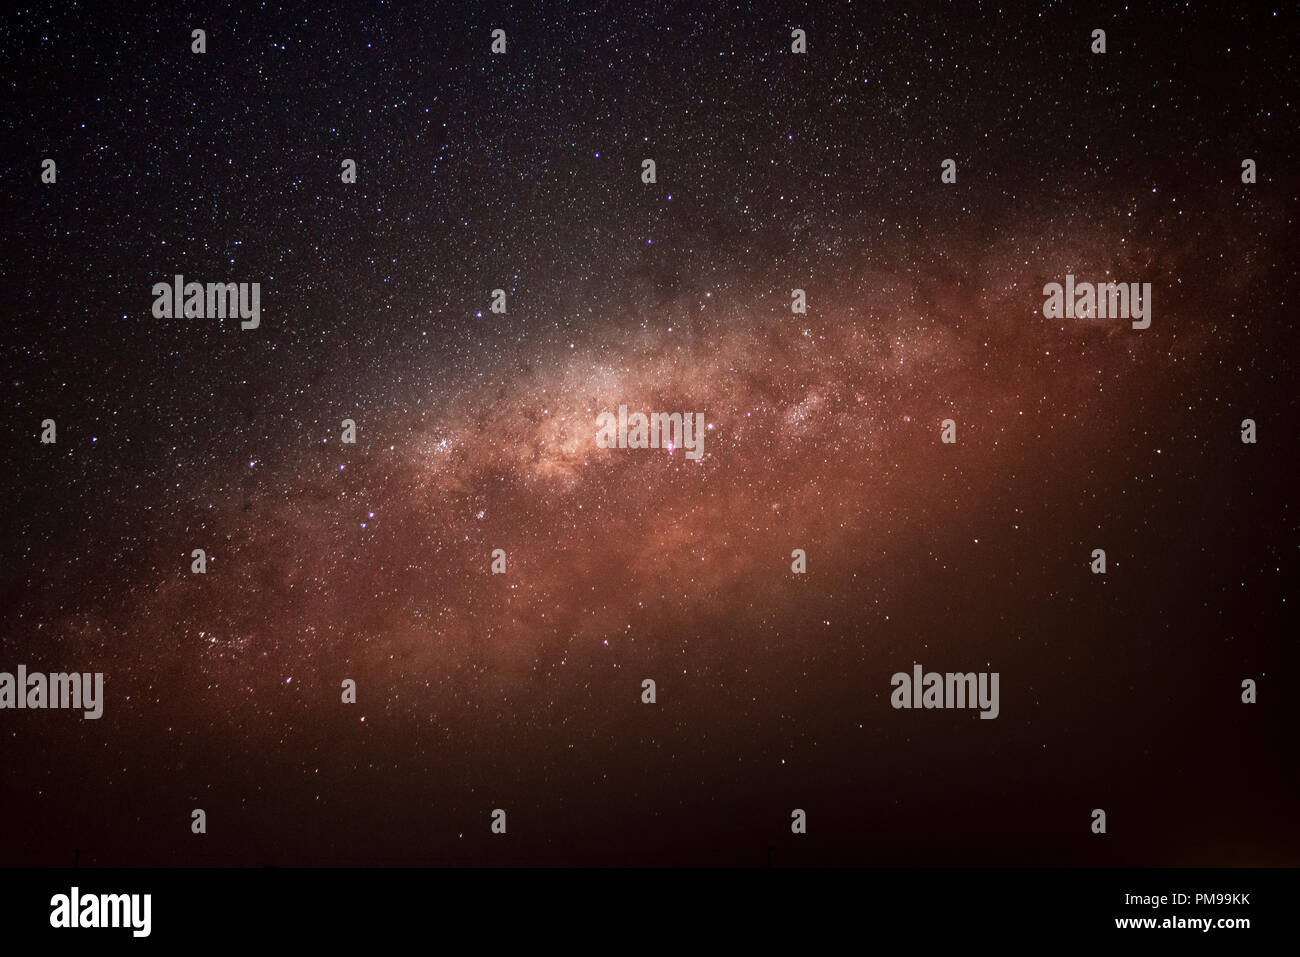 Galactic Center of the Milky Way. - Stock Image